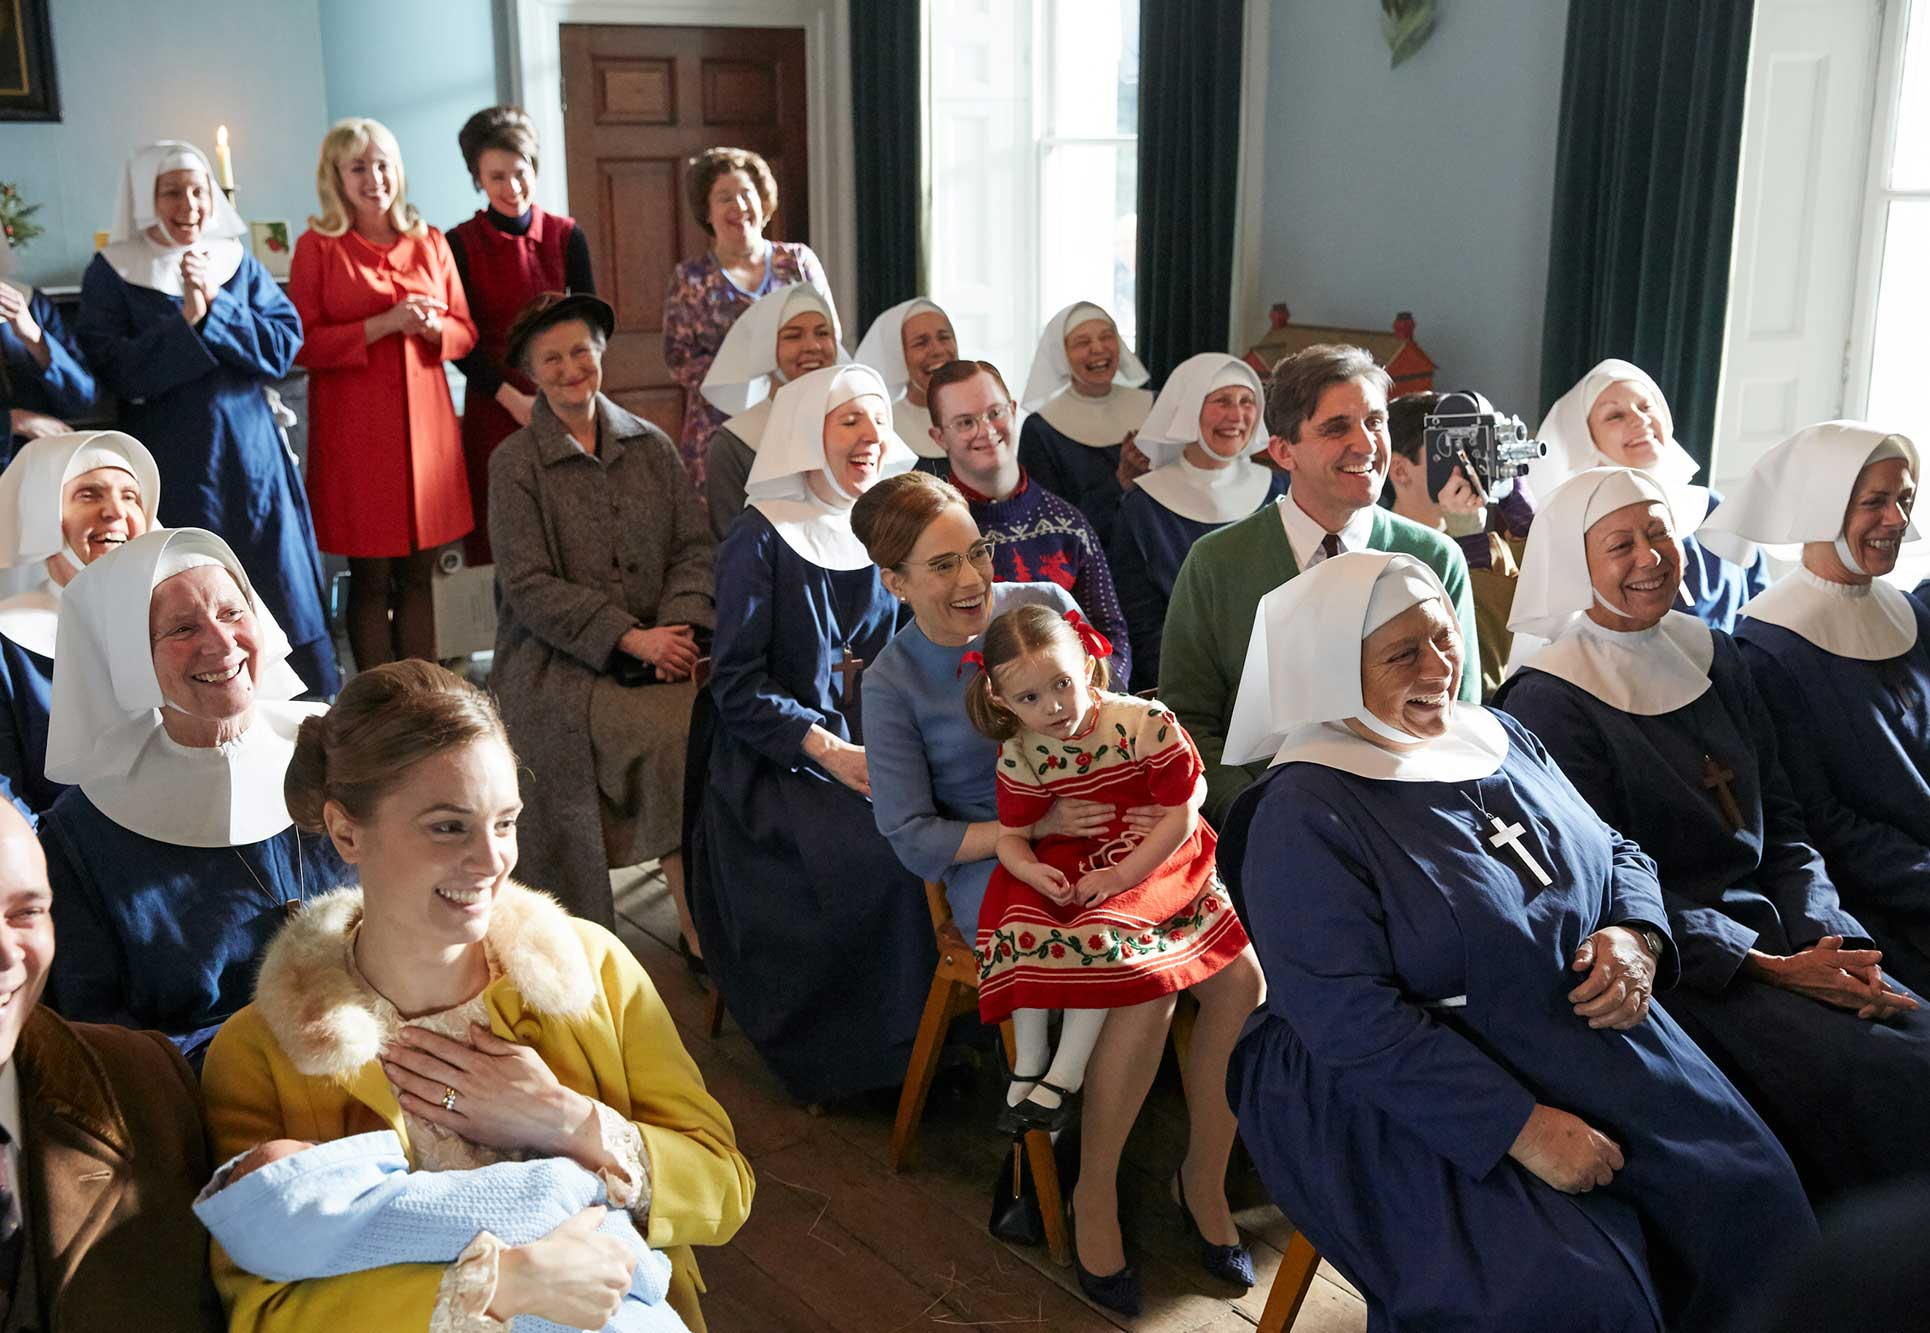 BBC-Pic-Pub-15836538-high_res-call-the-midwife-s8.jpg